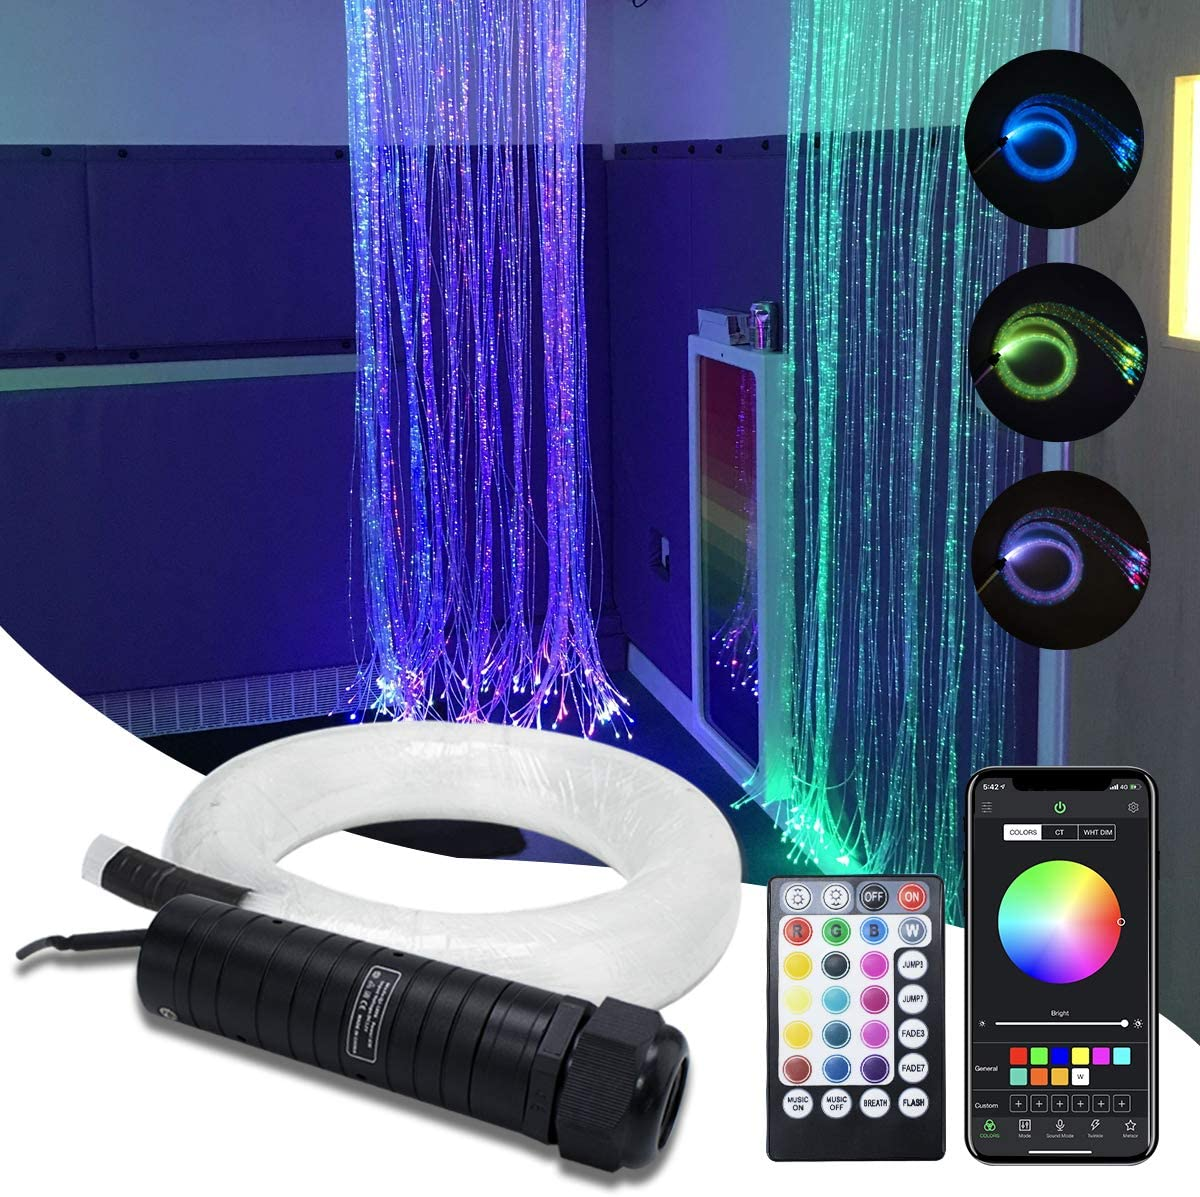 AMKI 6W RGB Fiber Cheap Optic Manufacturer direct delivery Curtain Kit Flash Point Waterfall Light